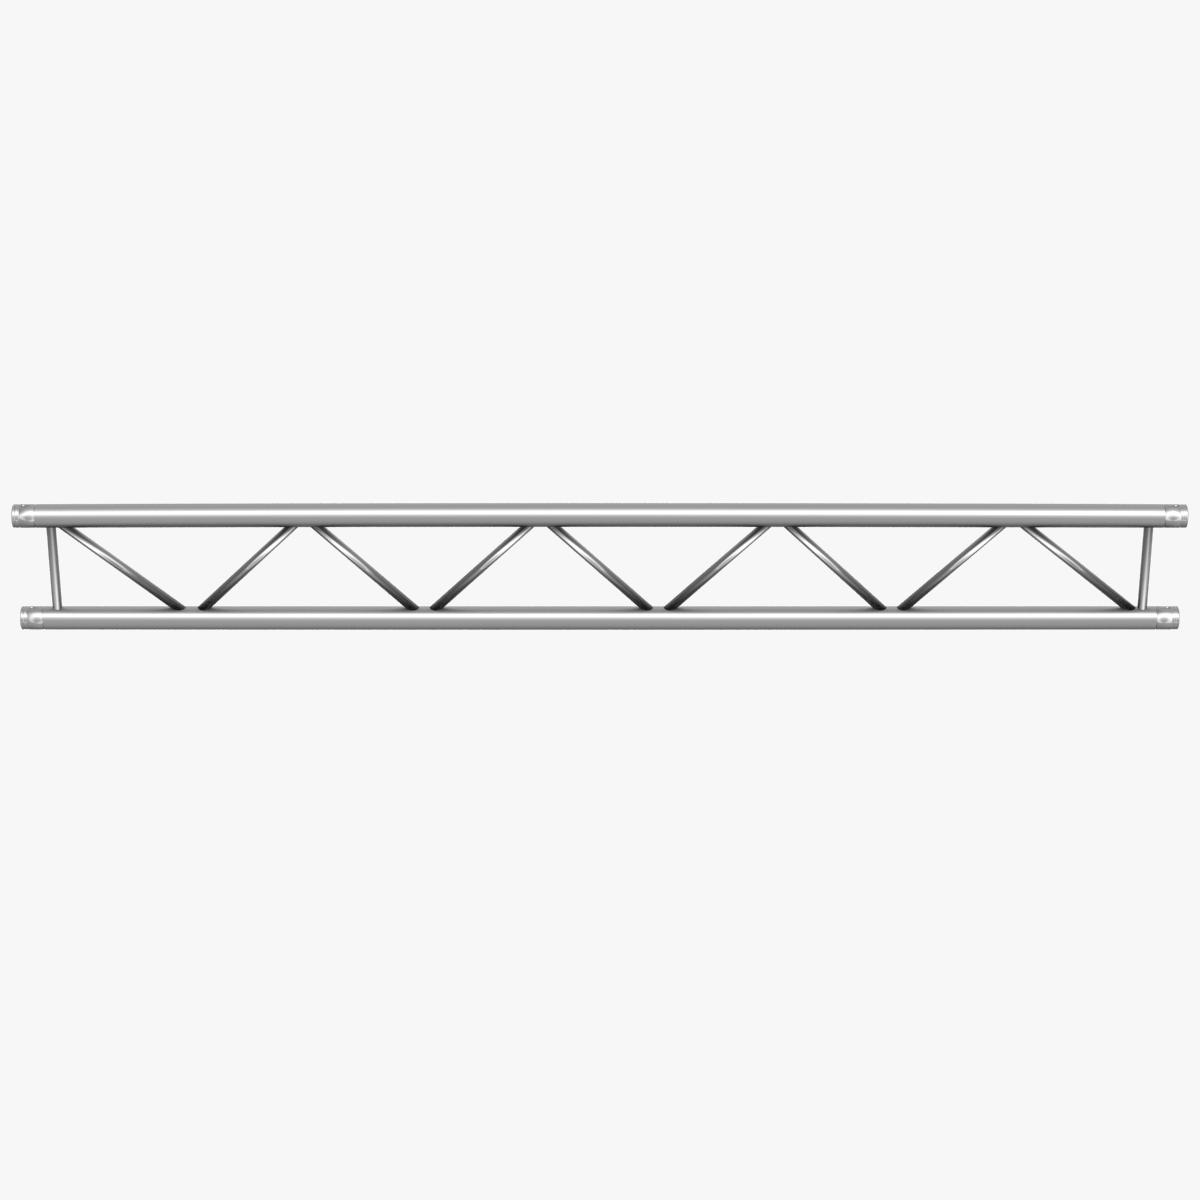 beam trusses (collection 24 modular pieces) 3d model 3ds max dxf fbx bmp blend c4d dae other obj 268726